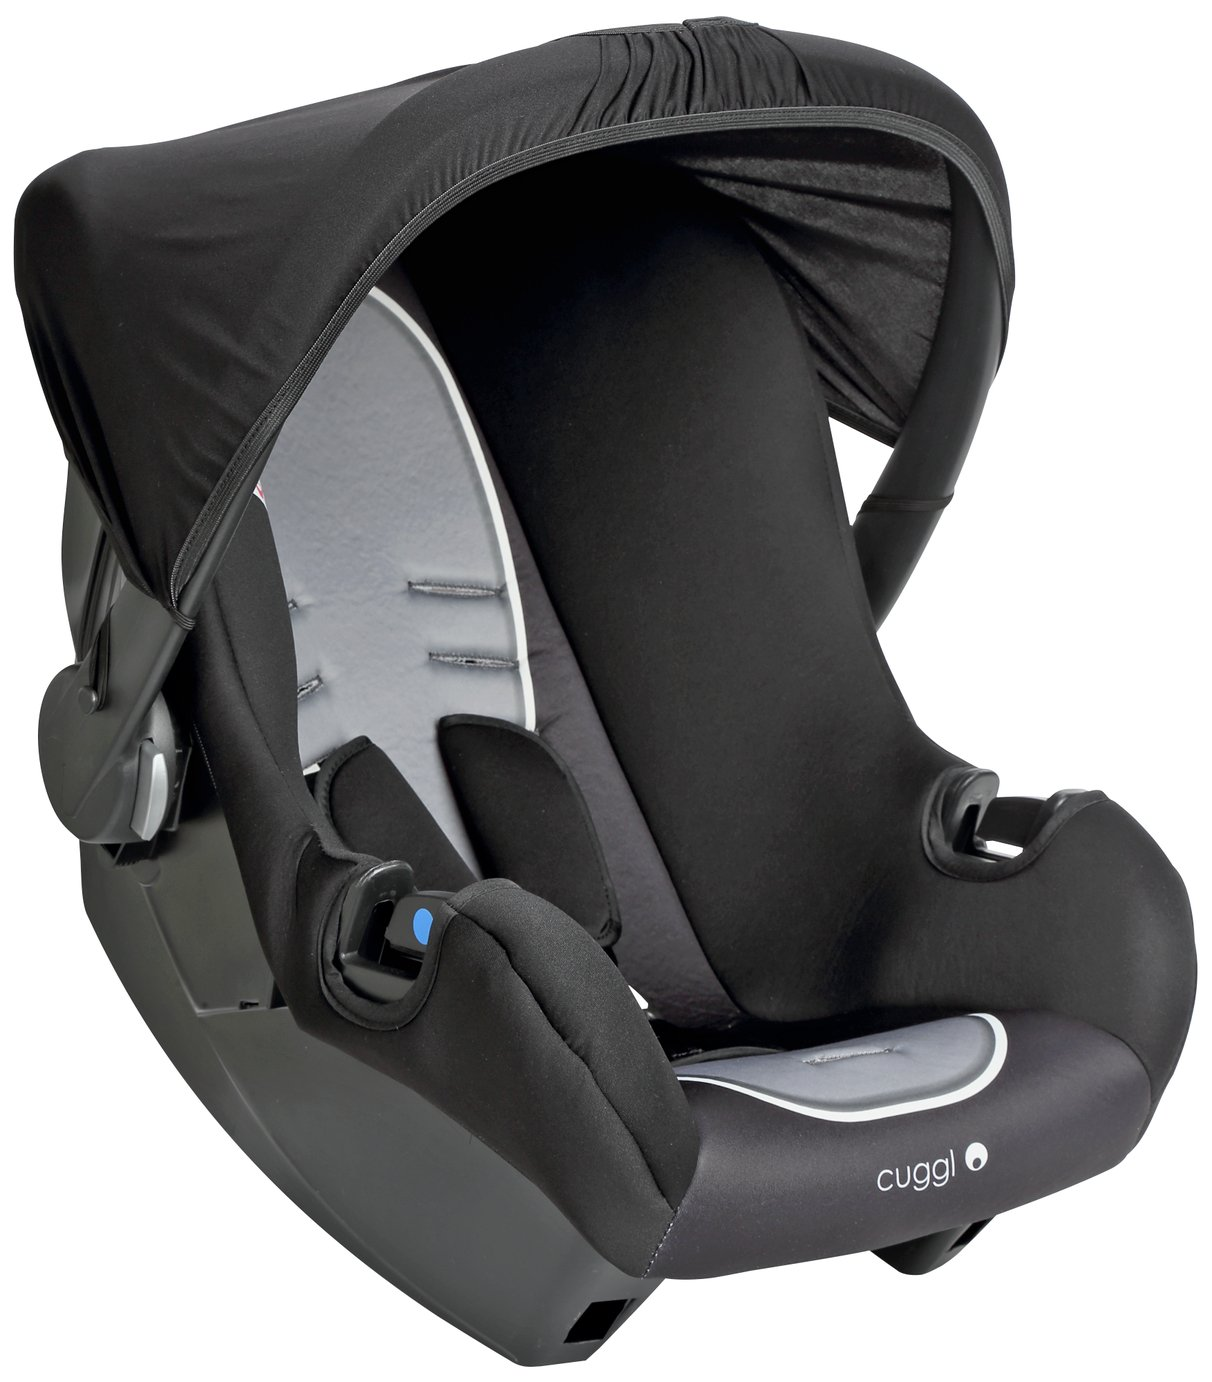 cuggl-sparrow-group-0-car-seat